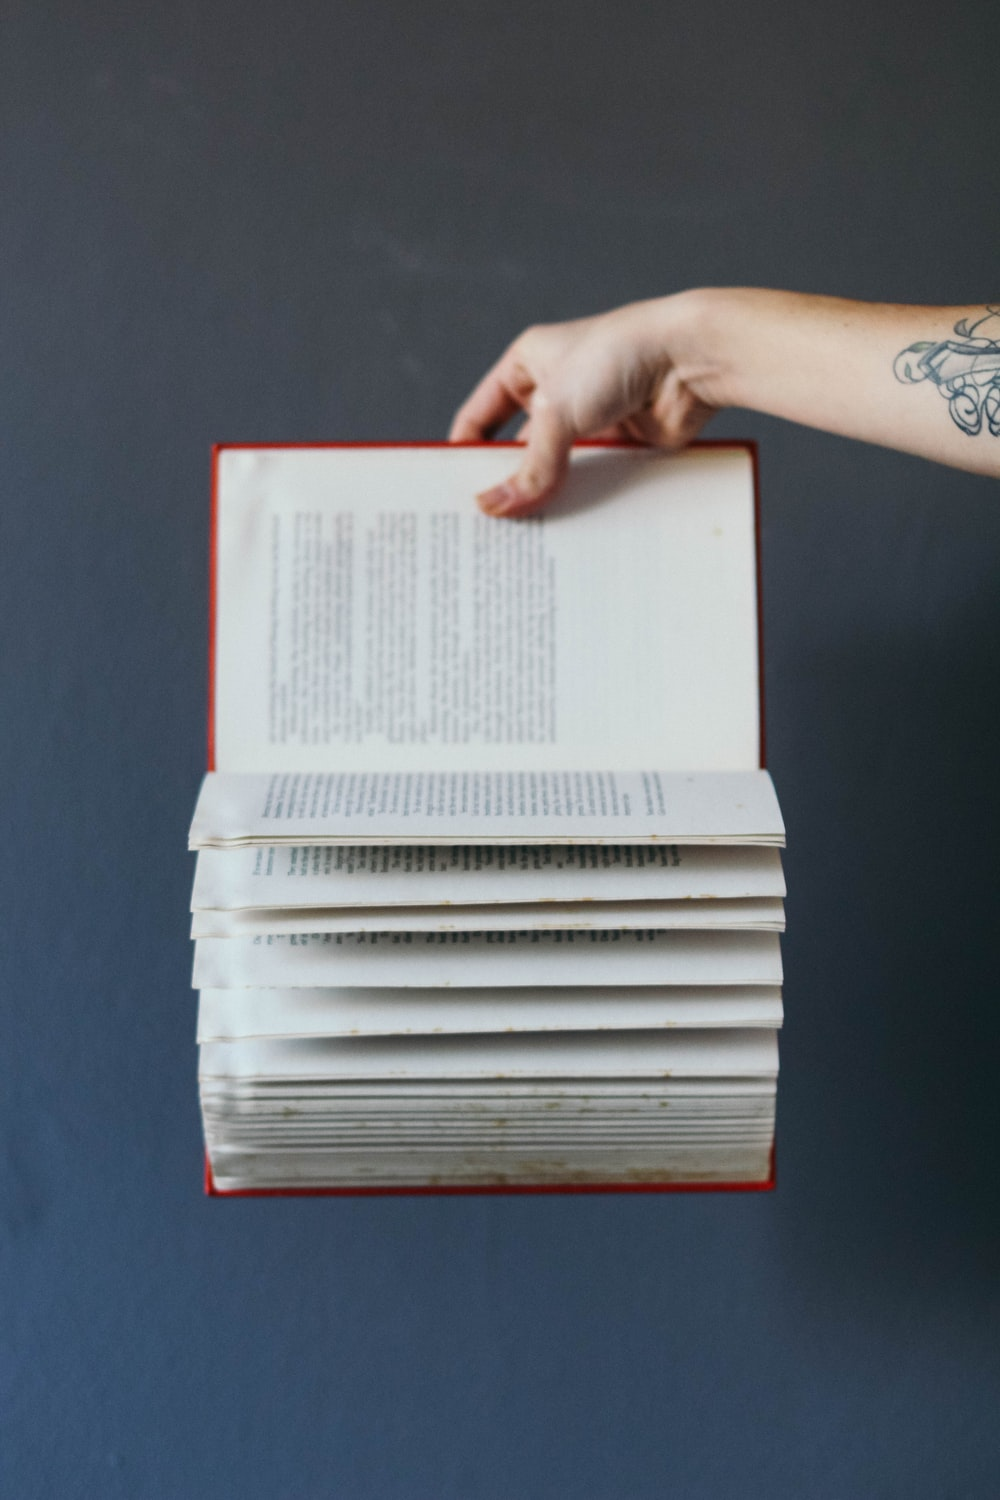 person holding red book